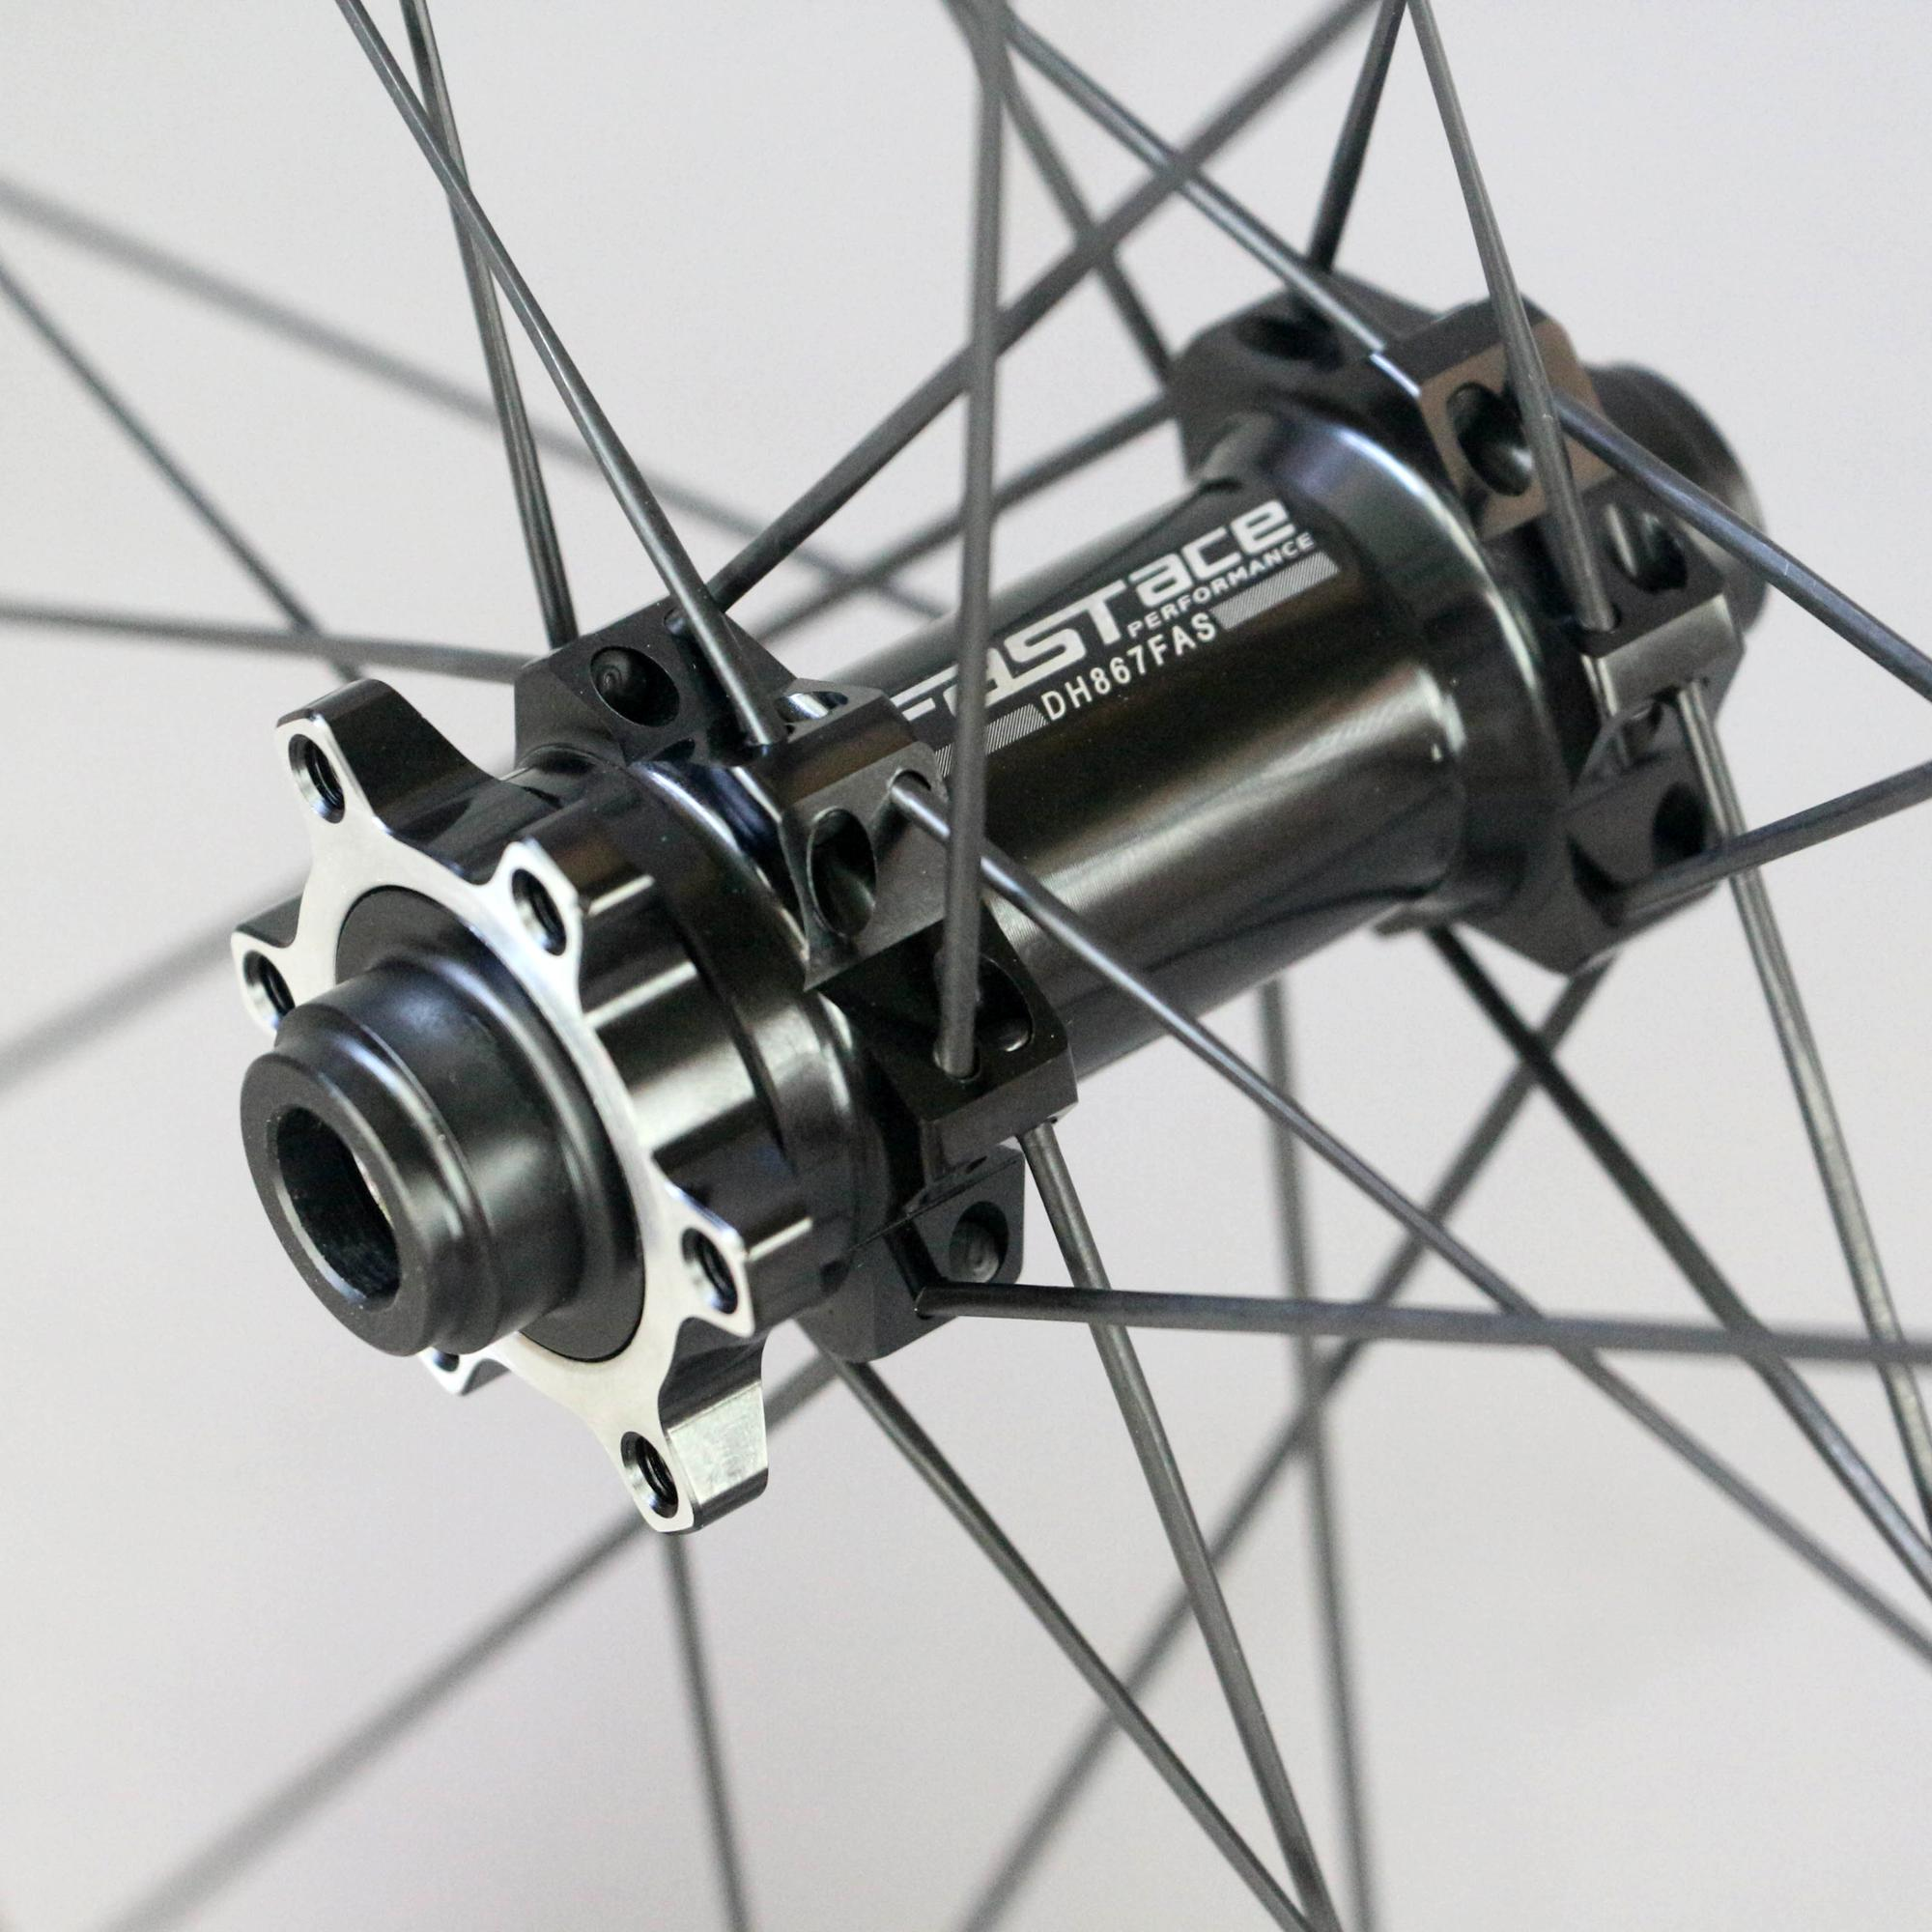 Carbon Disc Brake Wheelset FASTACE Hub ENDURO Bearing, Carbon Rims 48mm Deep 25mm Wide with UCI Tested